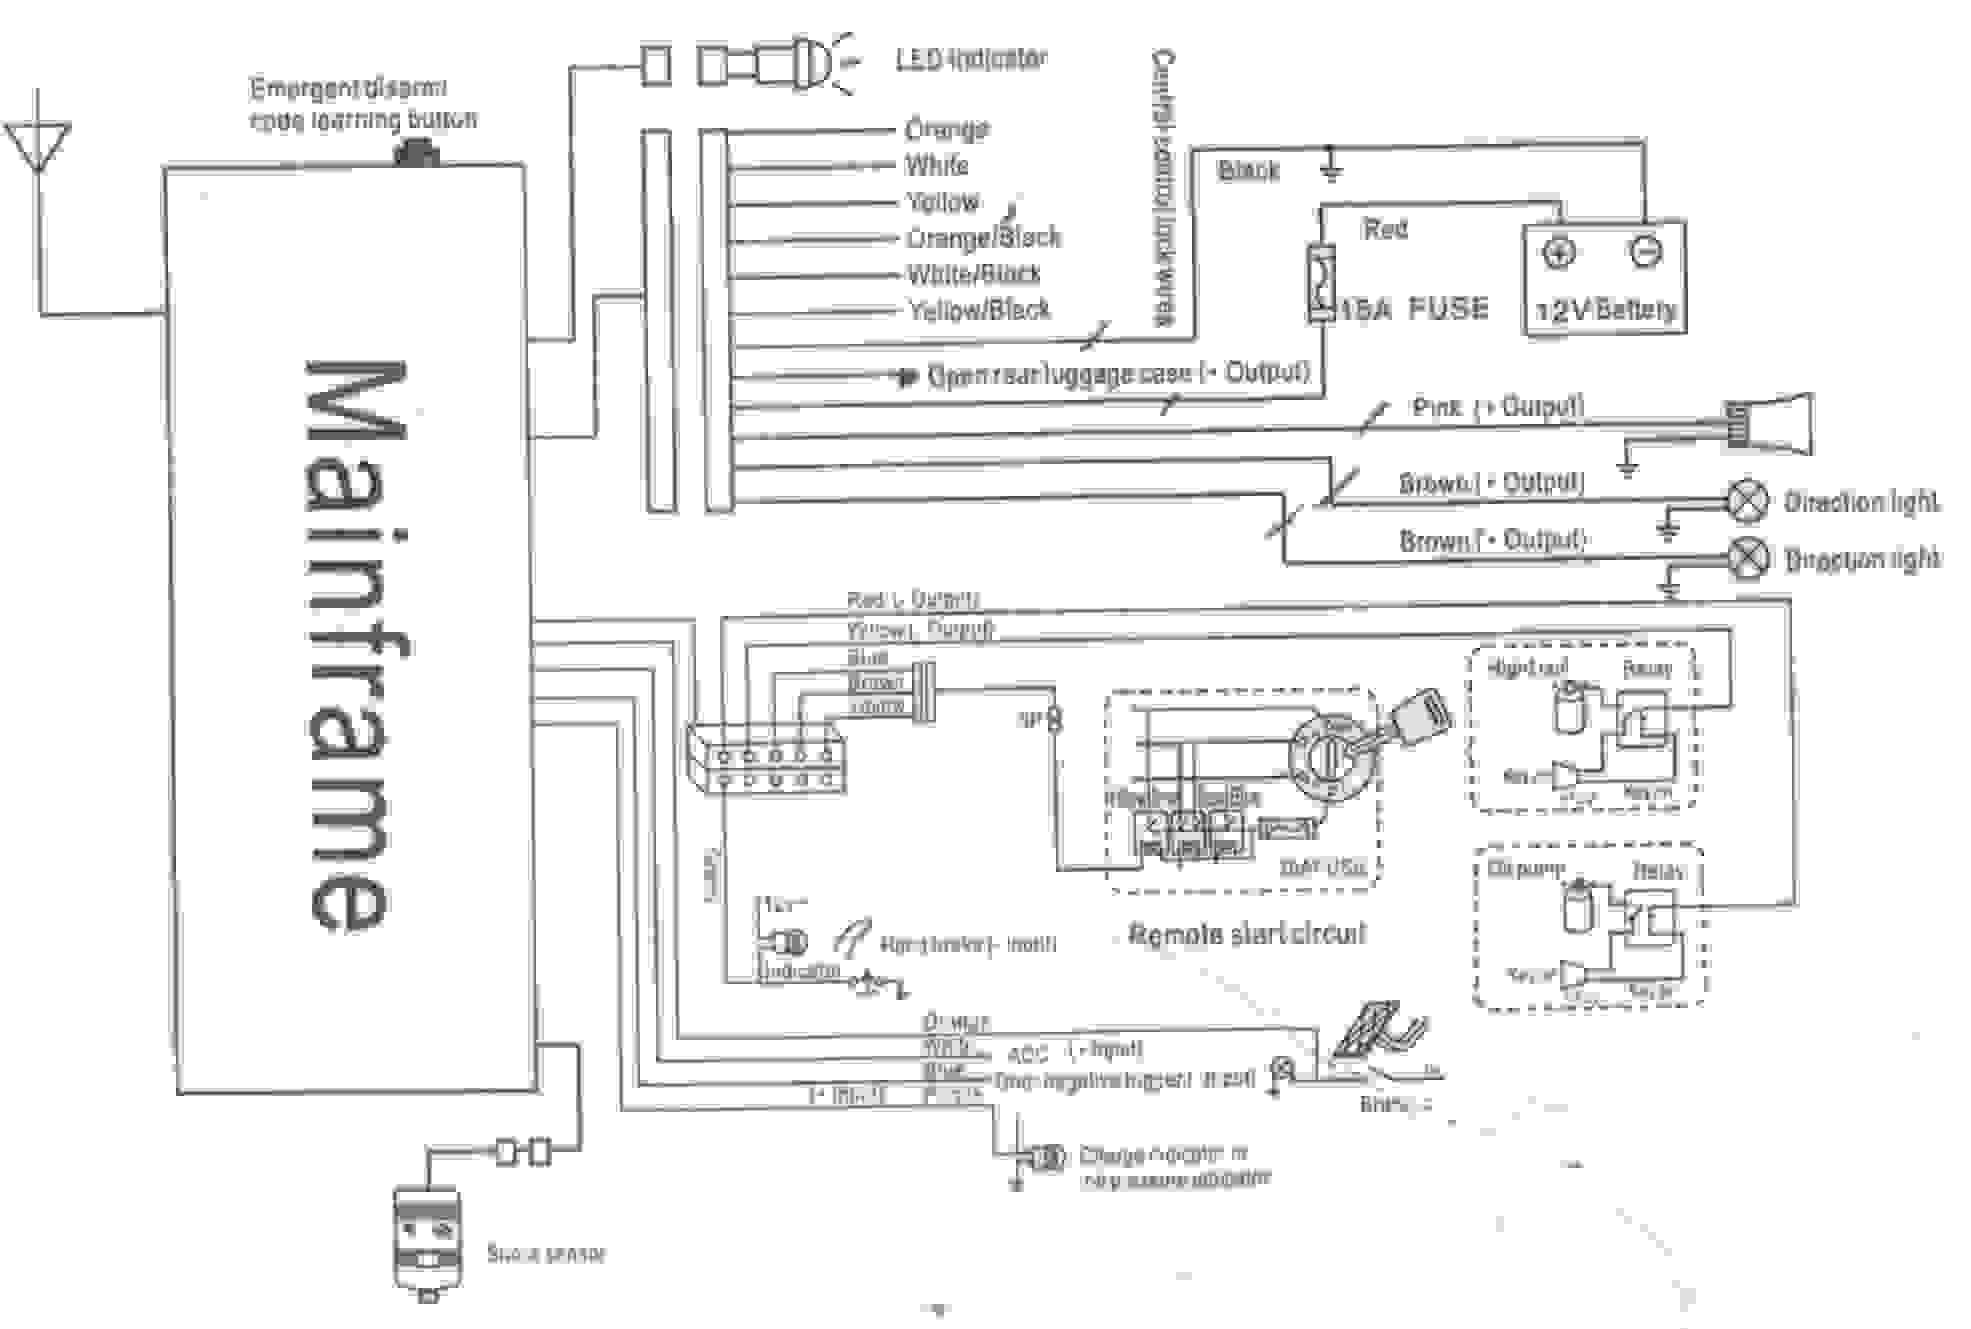 chapman vehicle security system wiring diagram Collection-Vehicle Alarm Wiring Diagram New Vehicle Alarm Wiring Diagram Chapman Security System Information 20-d